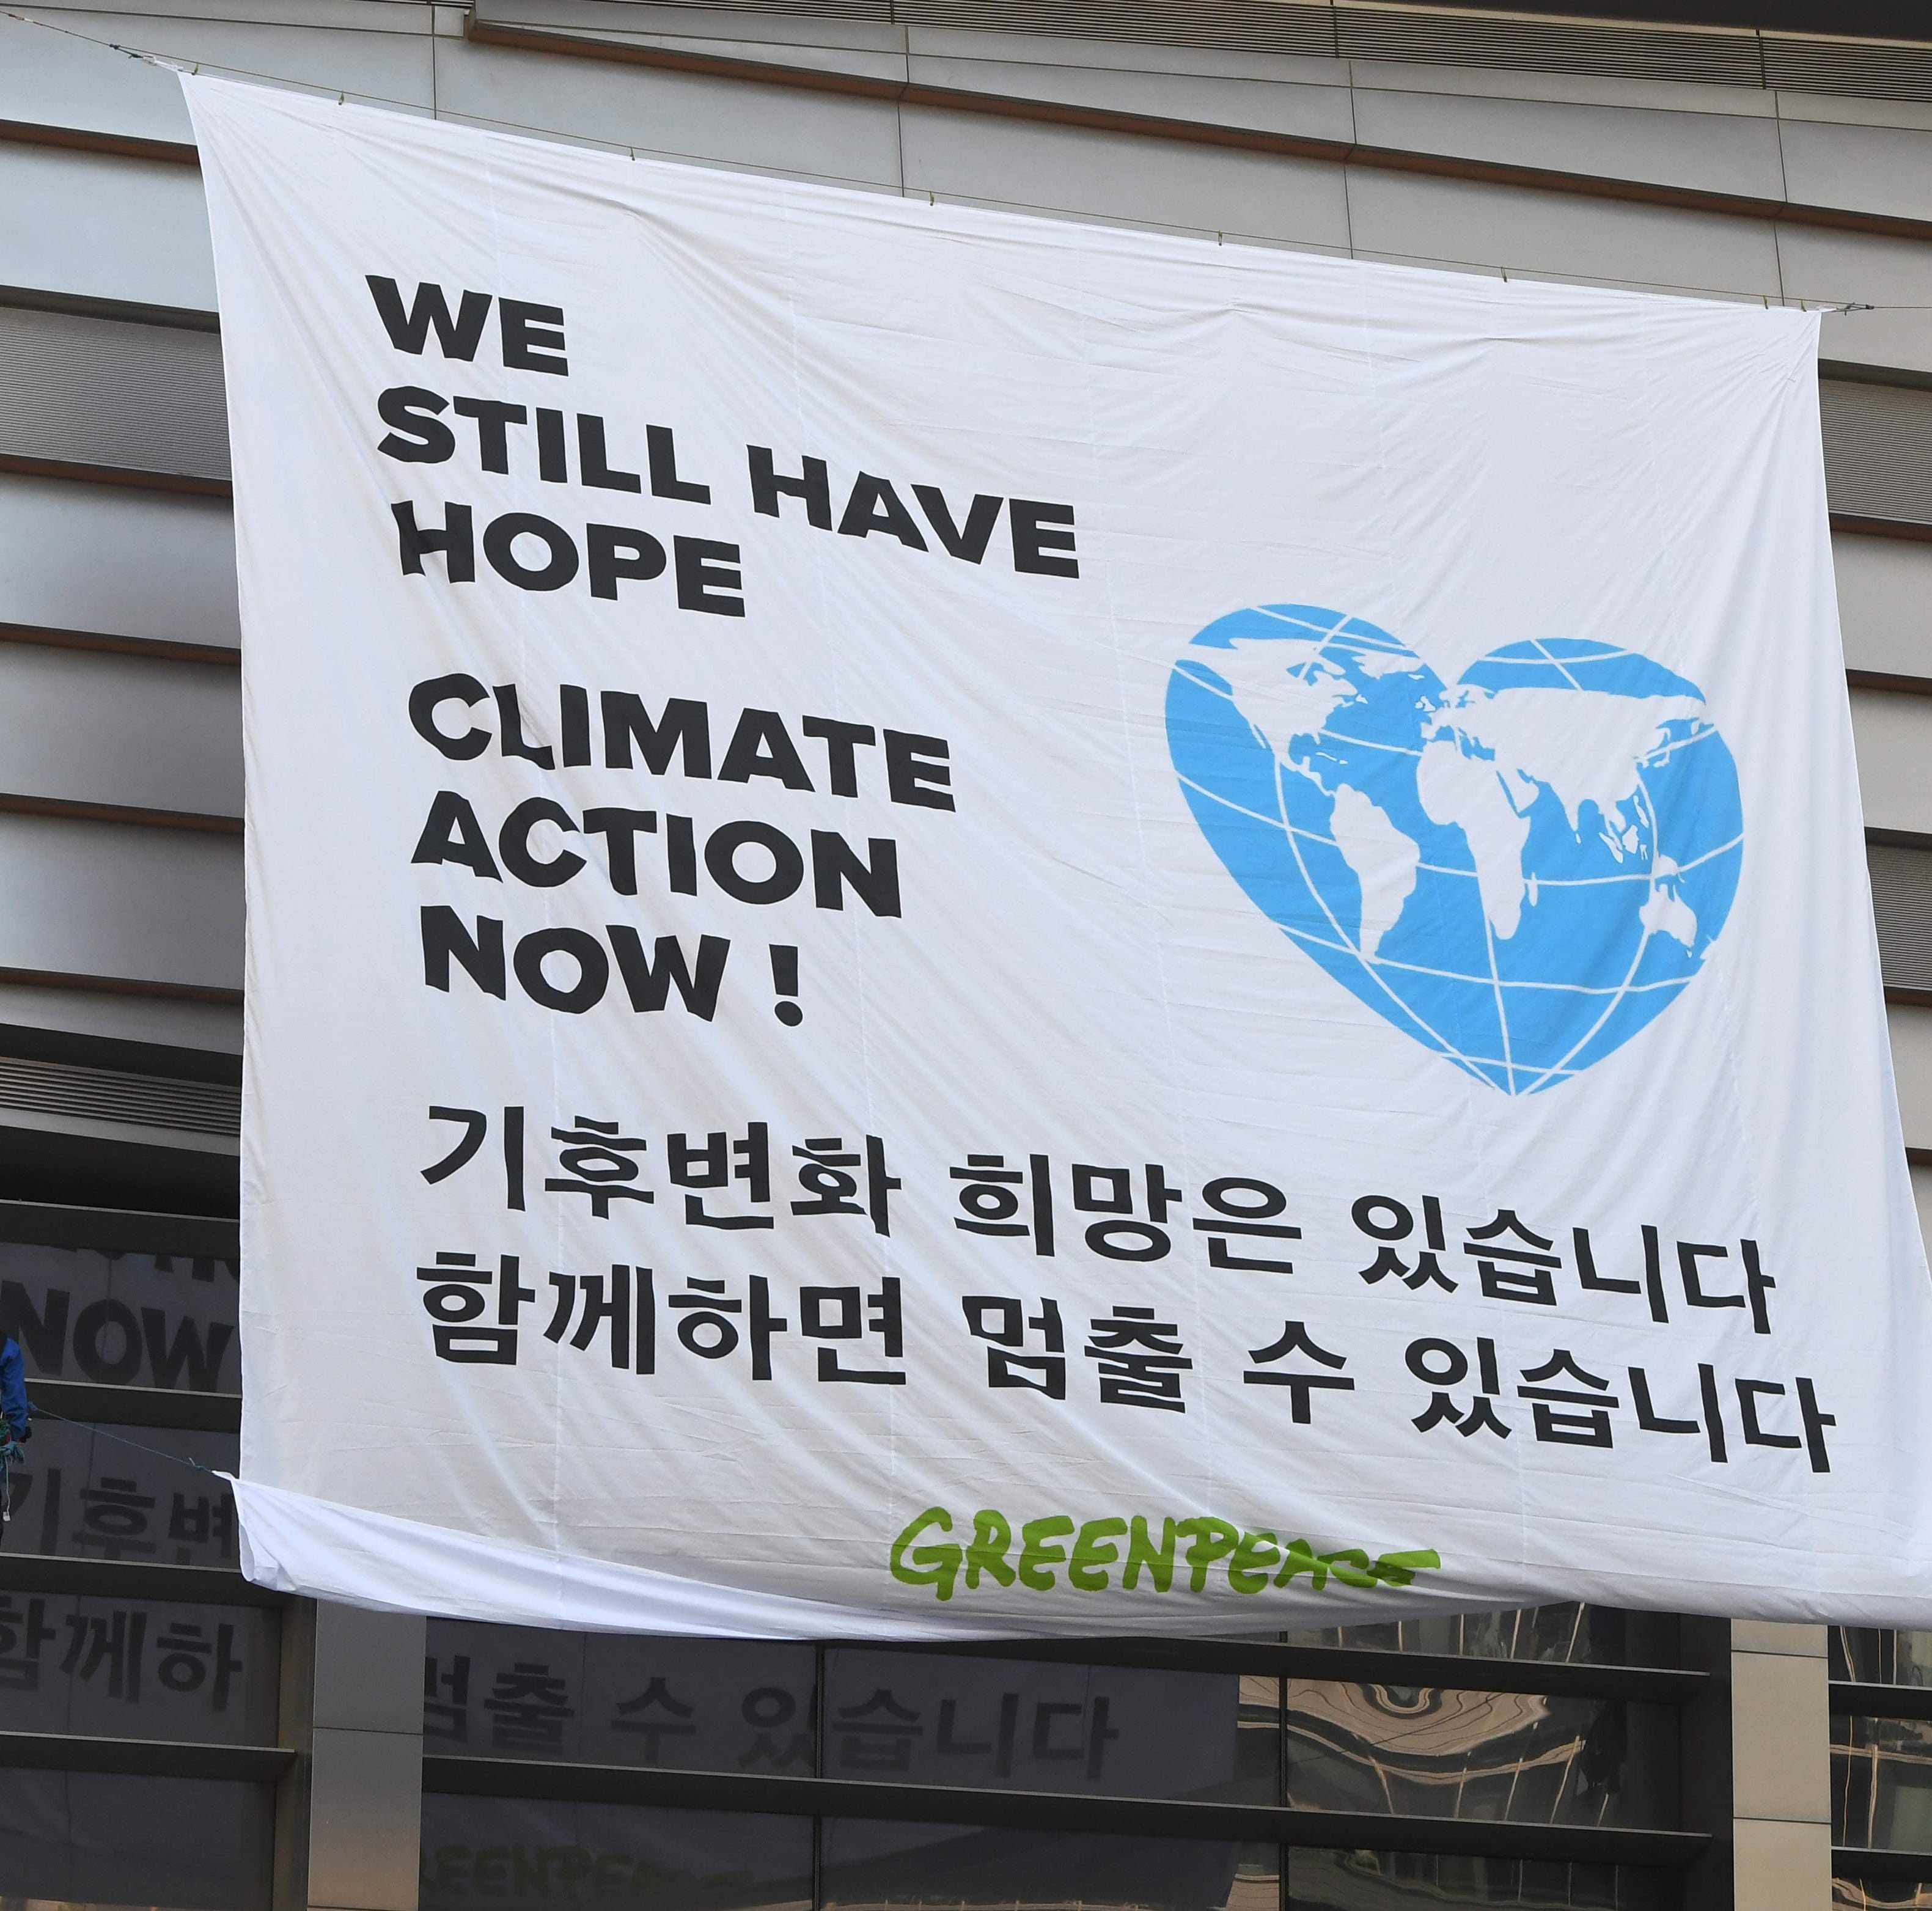 Don't panic over U.N. climate change report